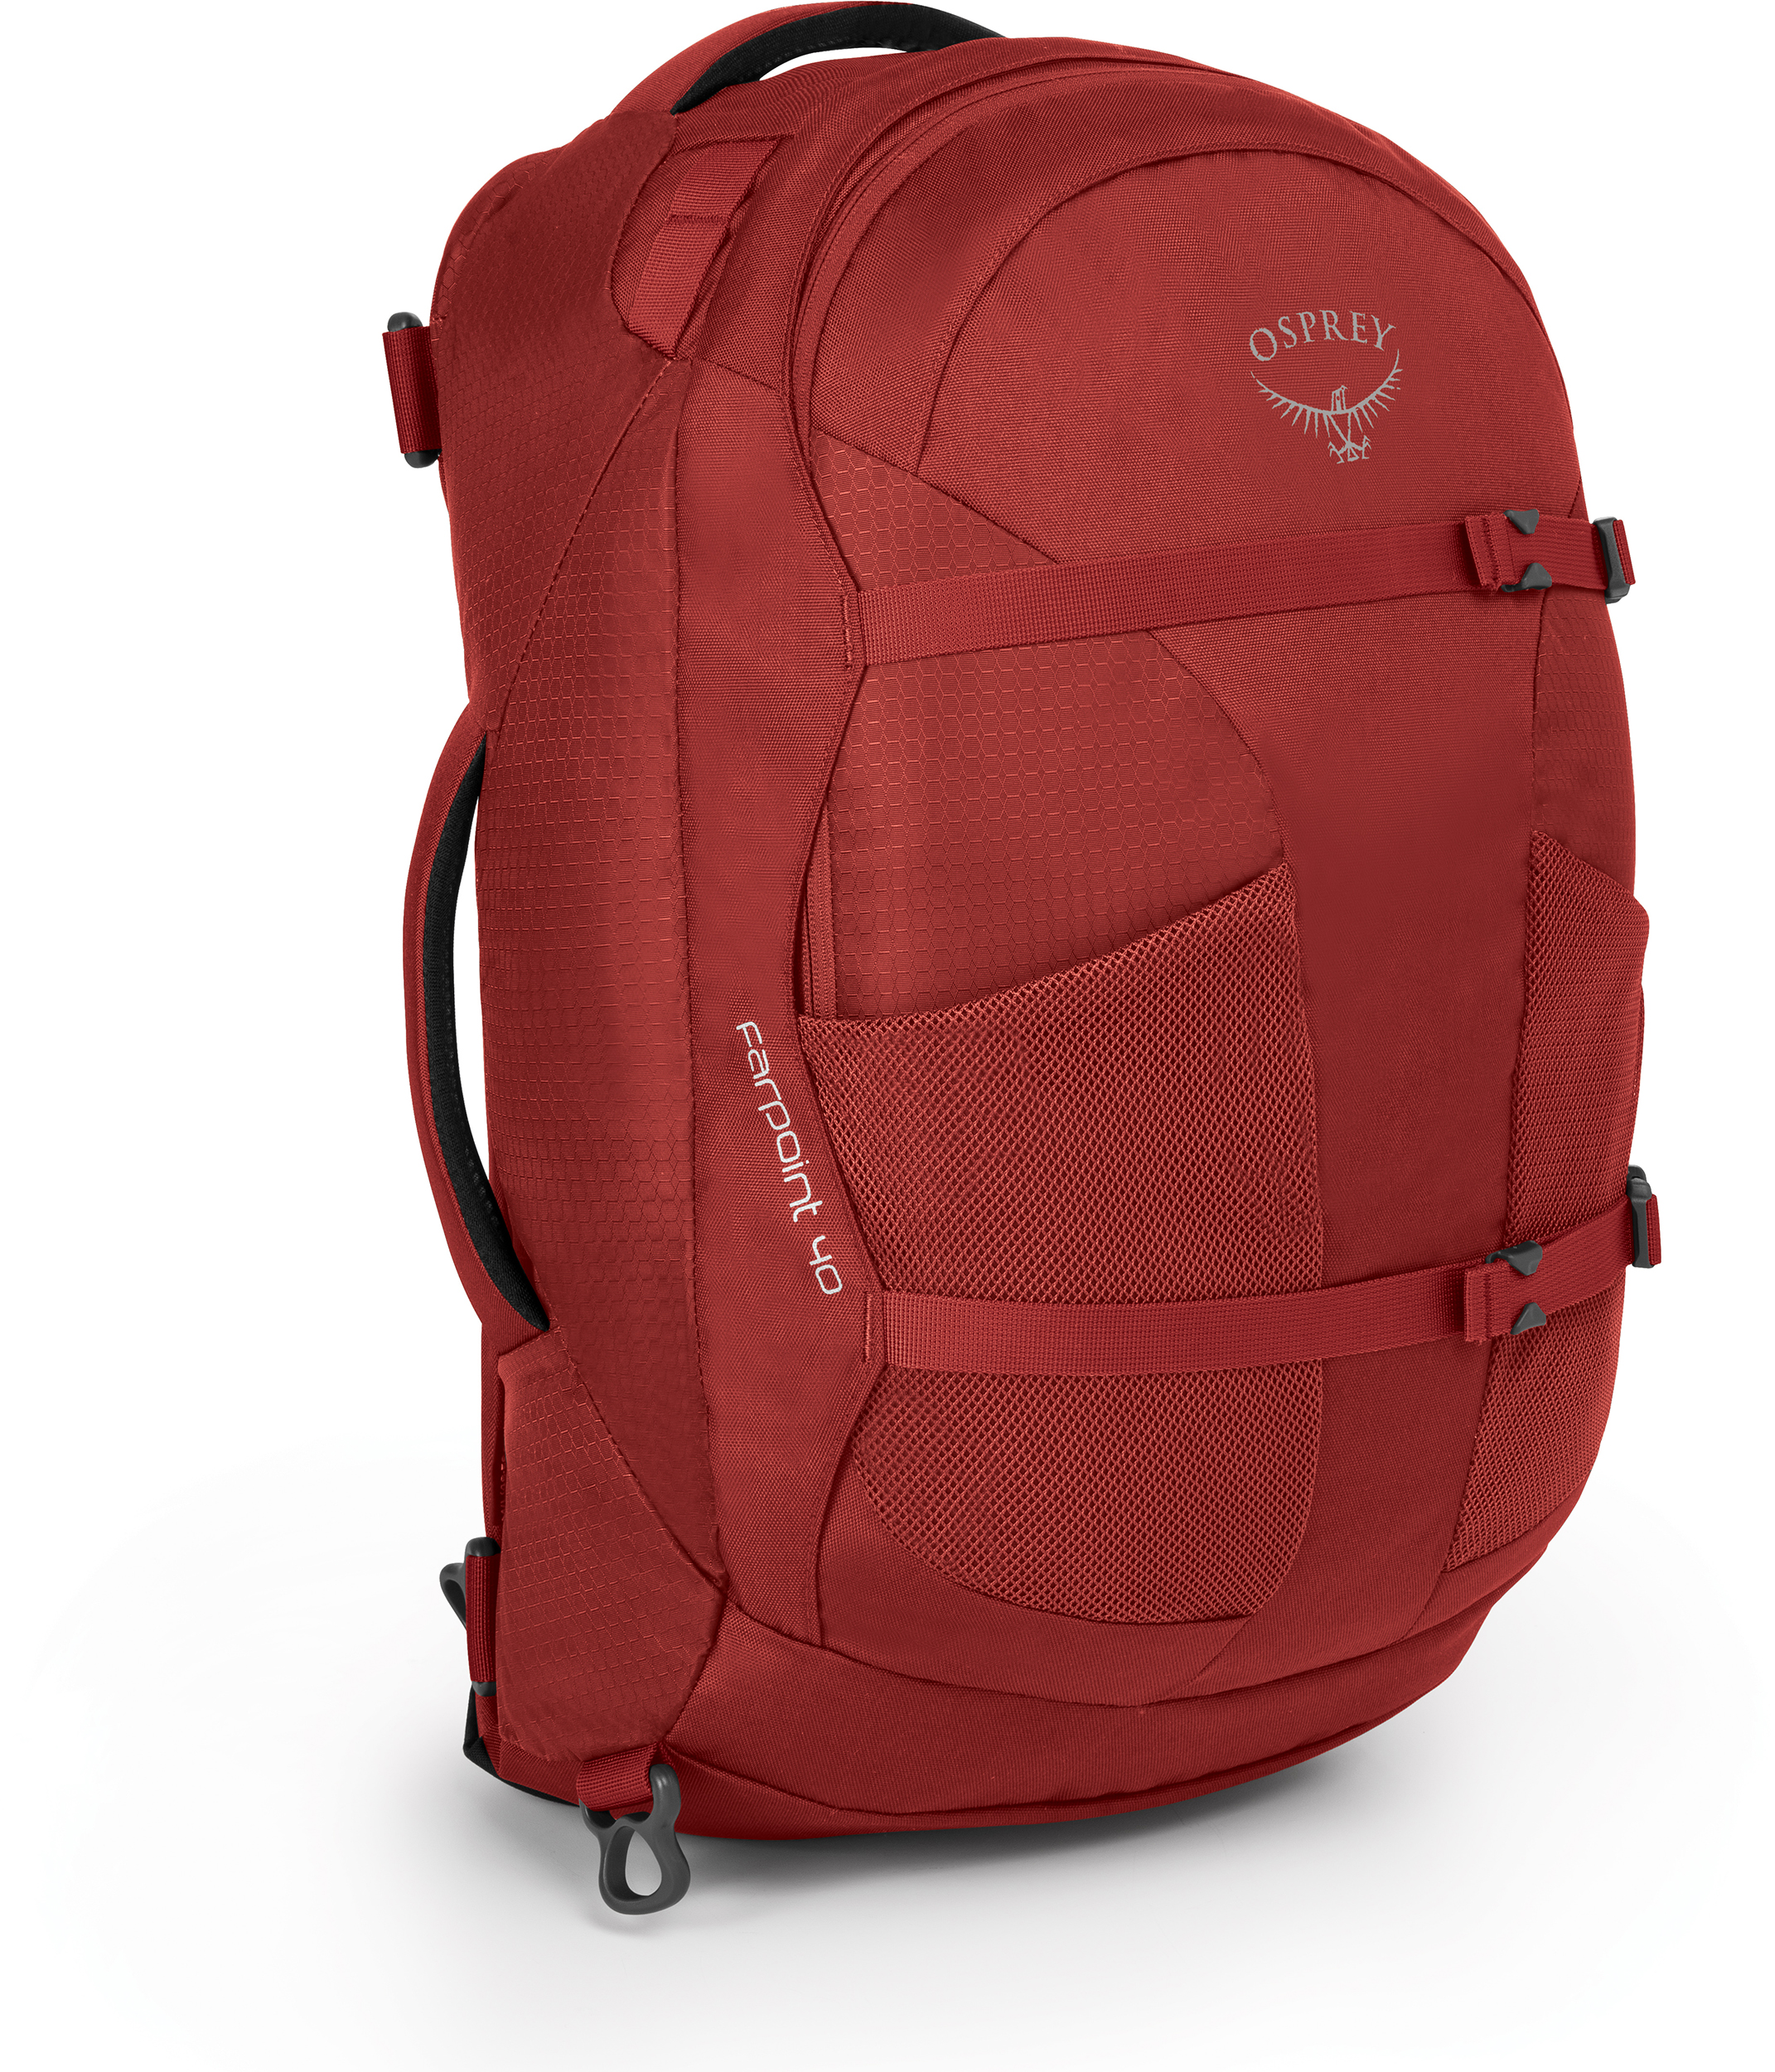 6726b42935e Osprey Packs and bags